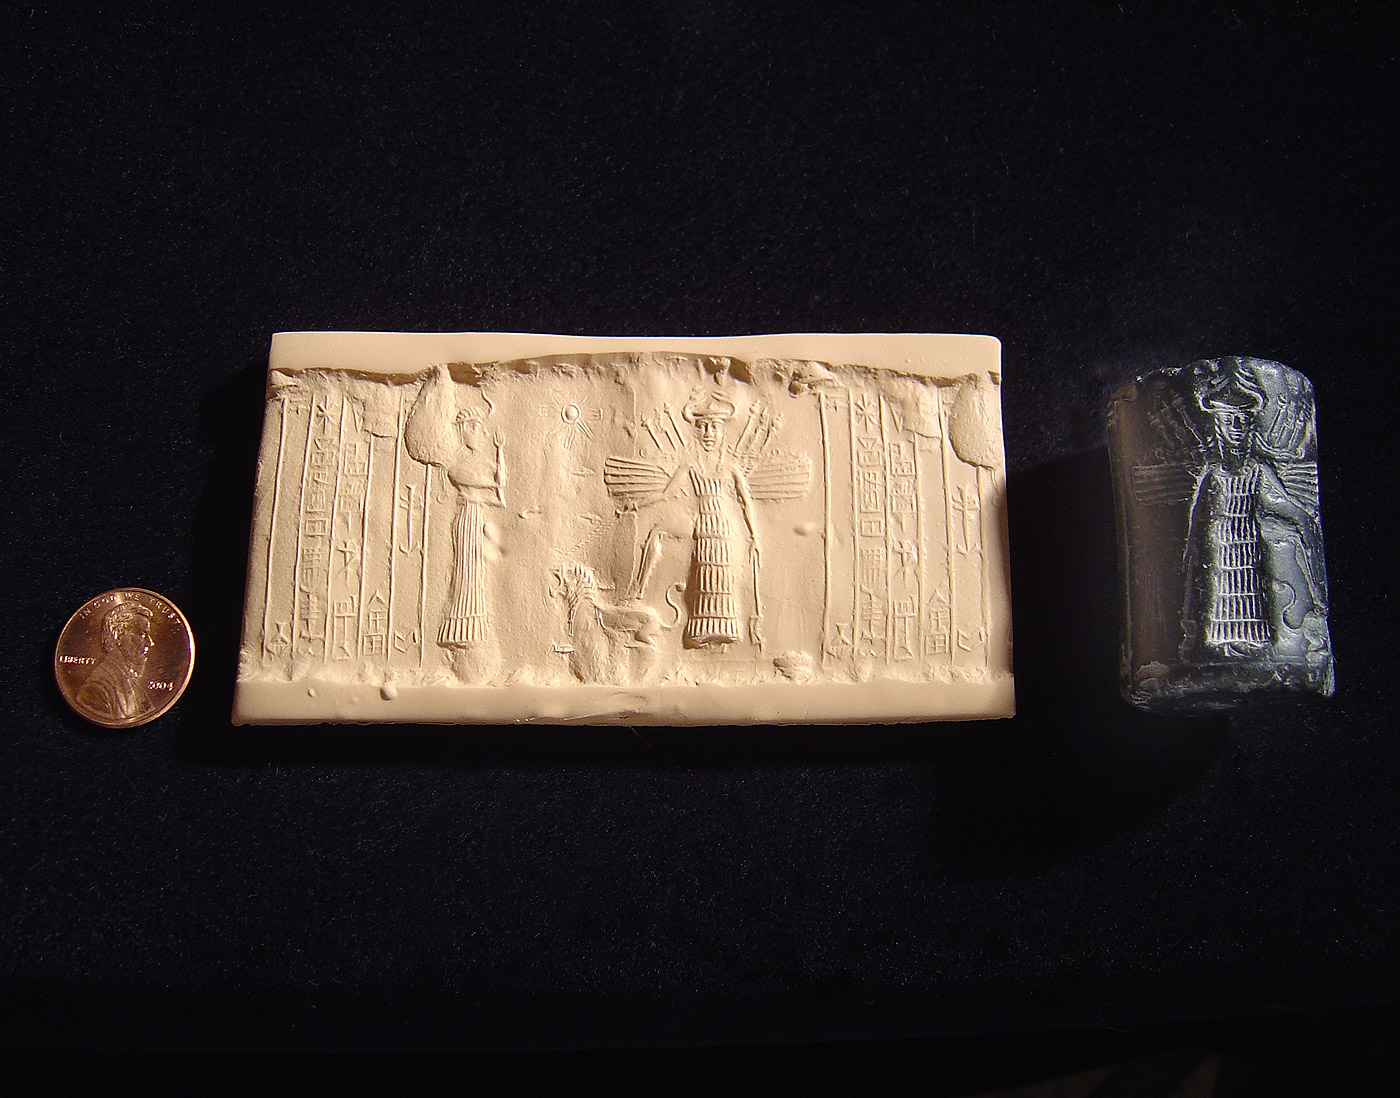 3r - Ninshubur & Inanna imprinted on wet clay by reversed-carved rolled rock, forming a seal